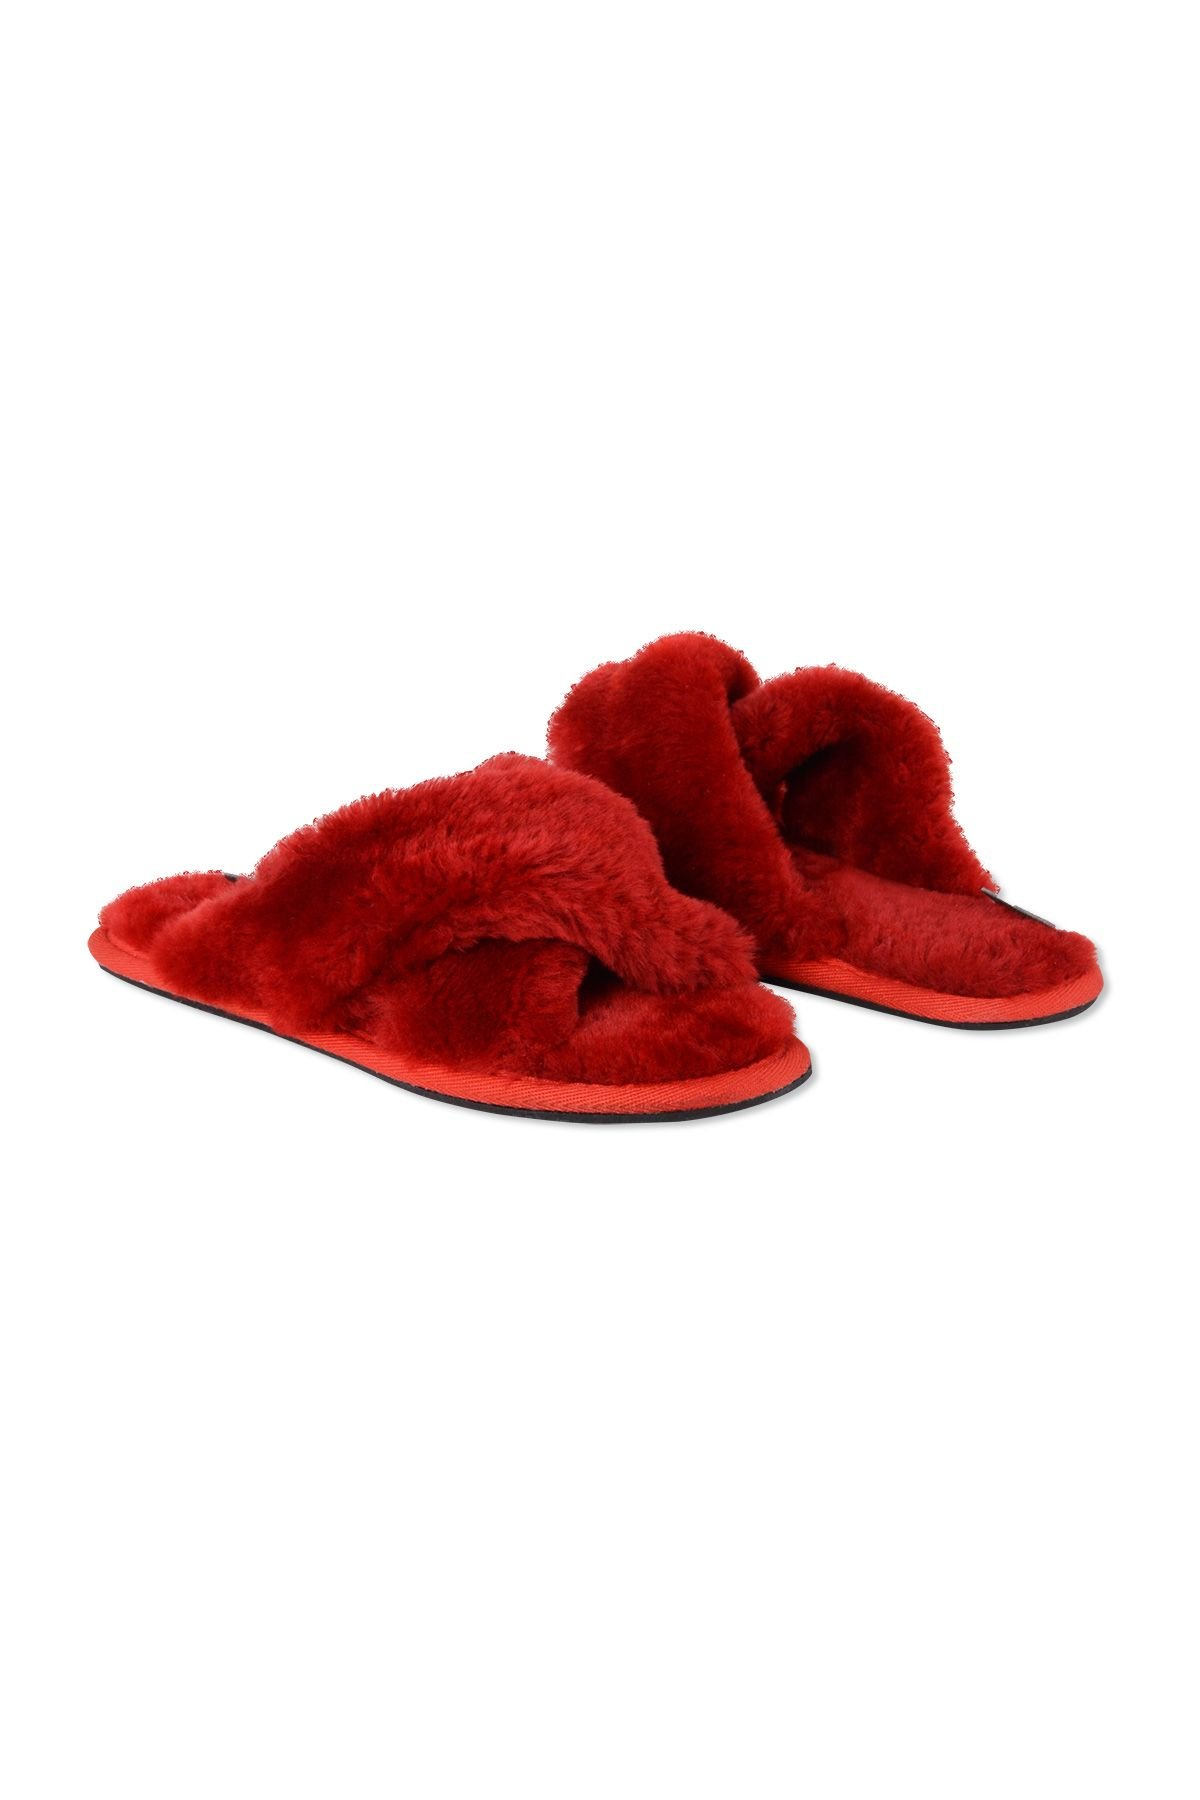 Pegia Women's Shearling Slippers 191096 Red